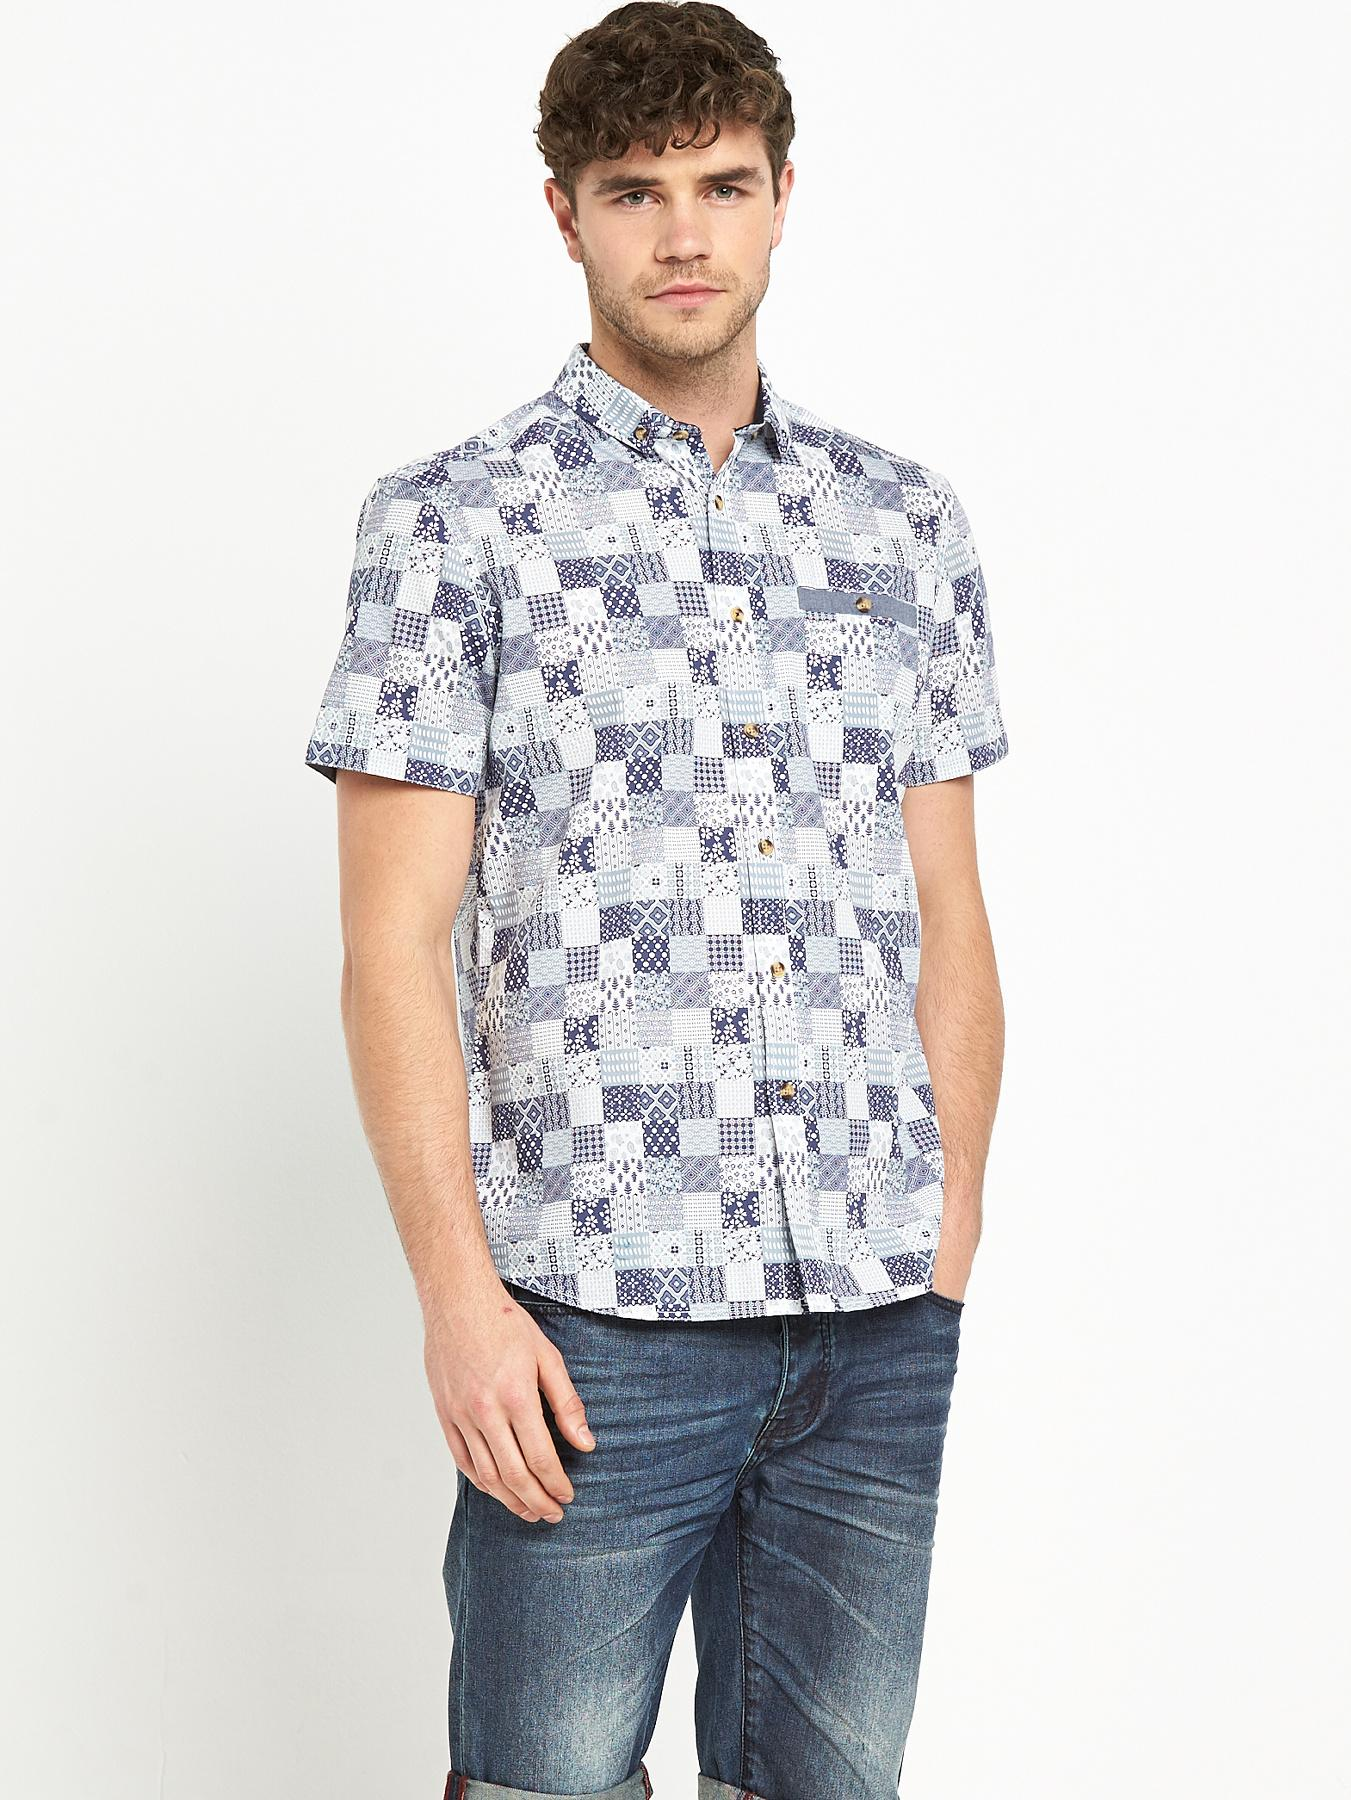 Goodsouls Mens Short Sleeve Navigate Print Shirt - White, White